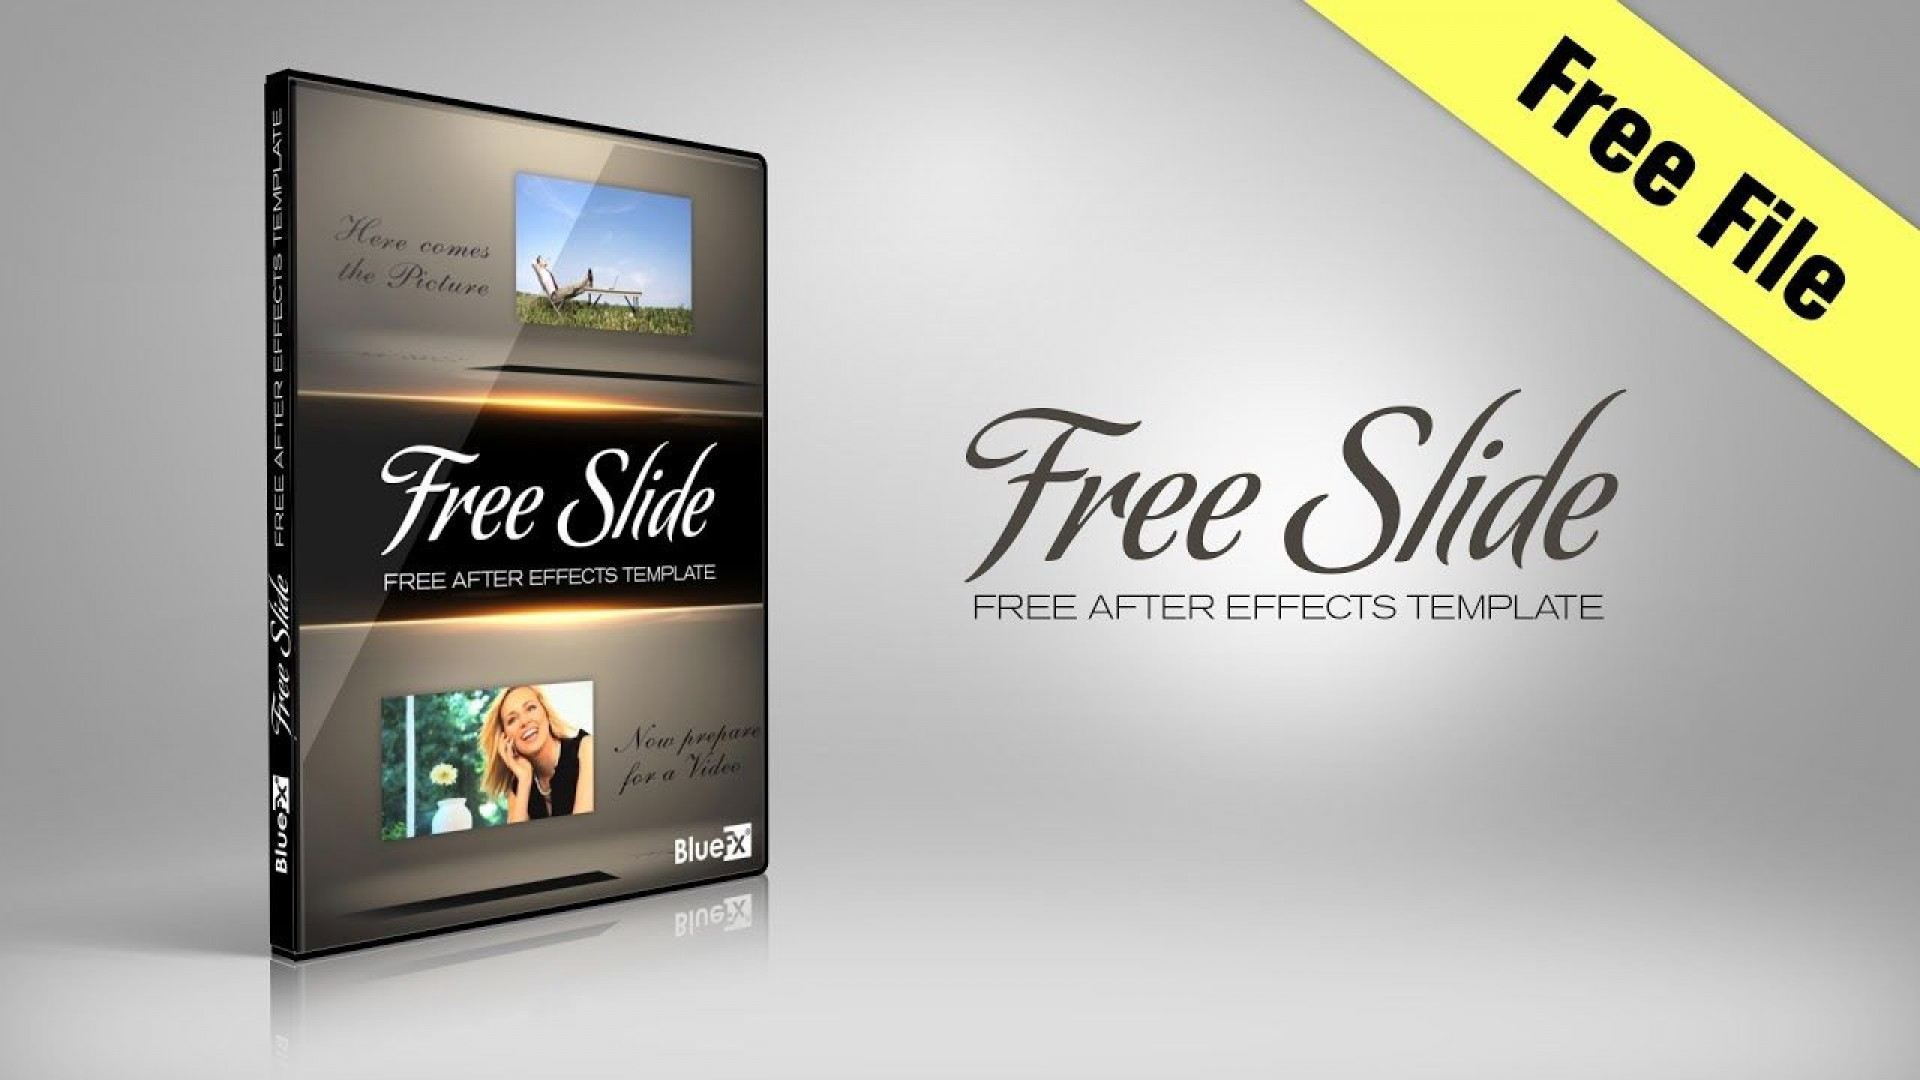 003 Stirring Free Adobe After Effect Template Download Highest Clarity  Project Cs6 Wedding1920